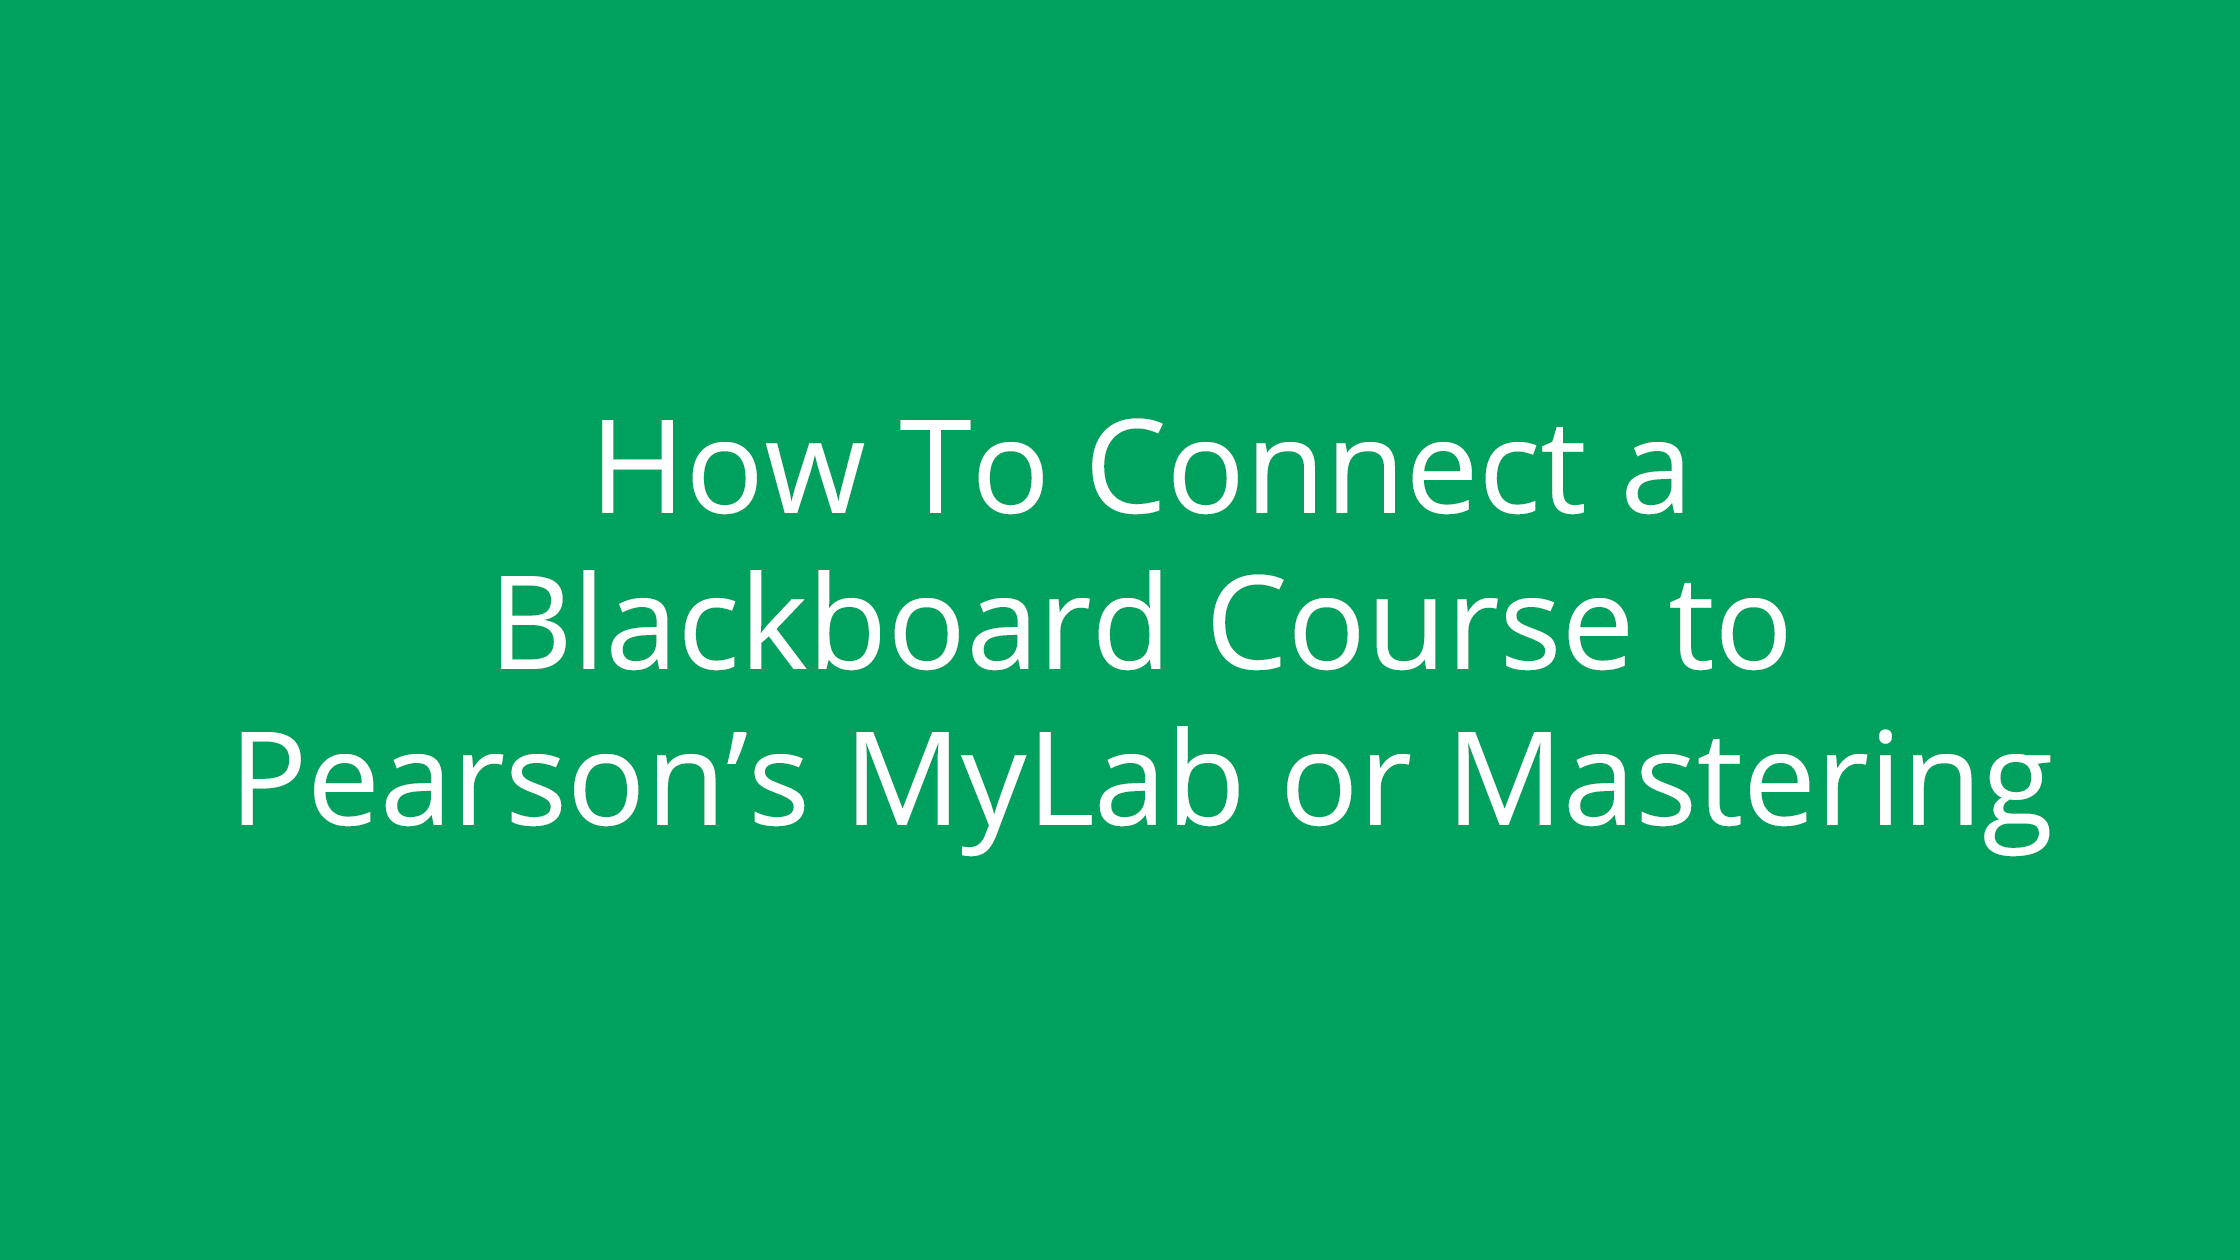 How To Connect a Blackboard Course to a Pearson MyLab or Mastering